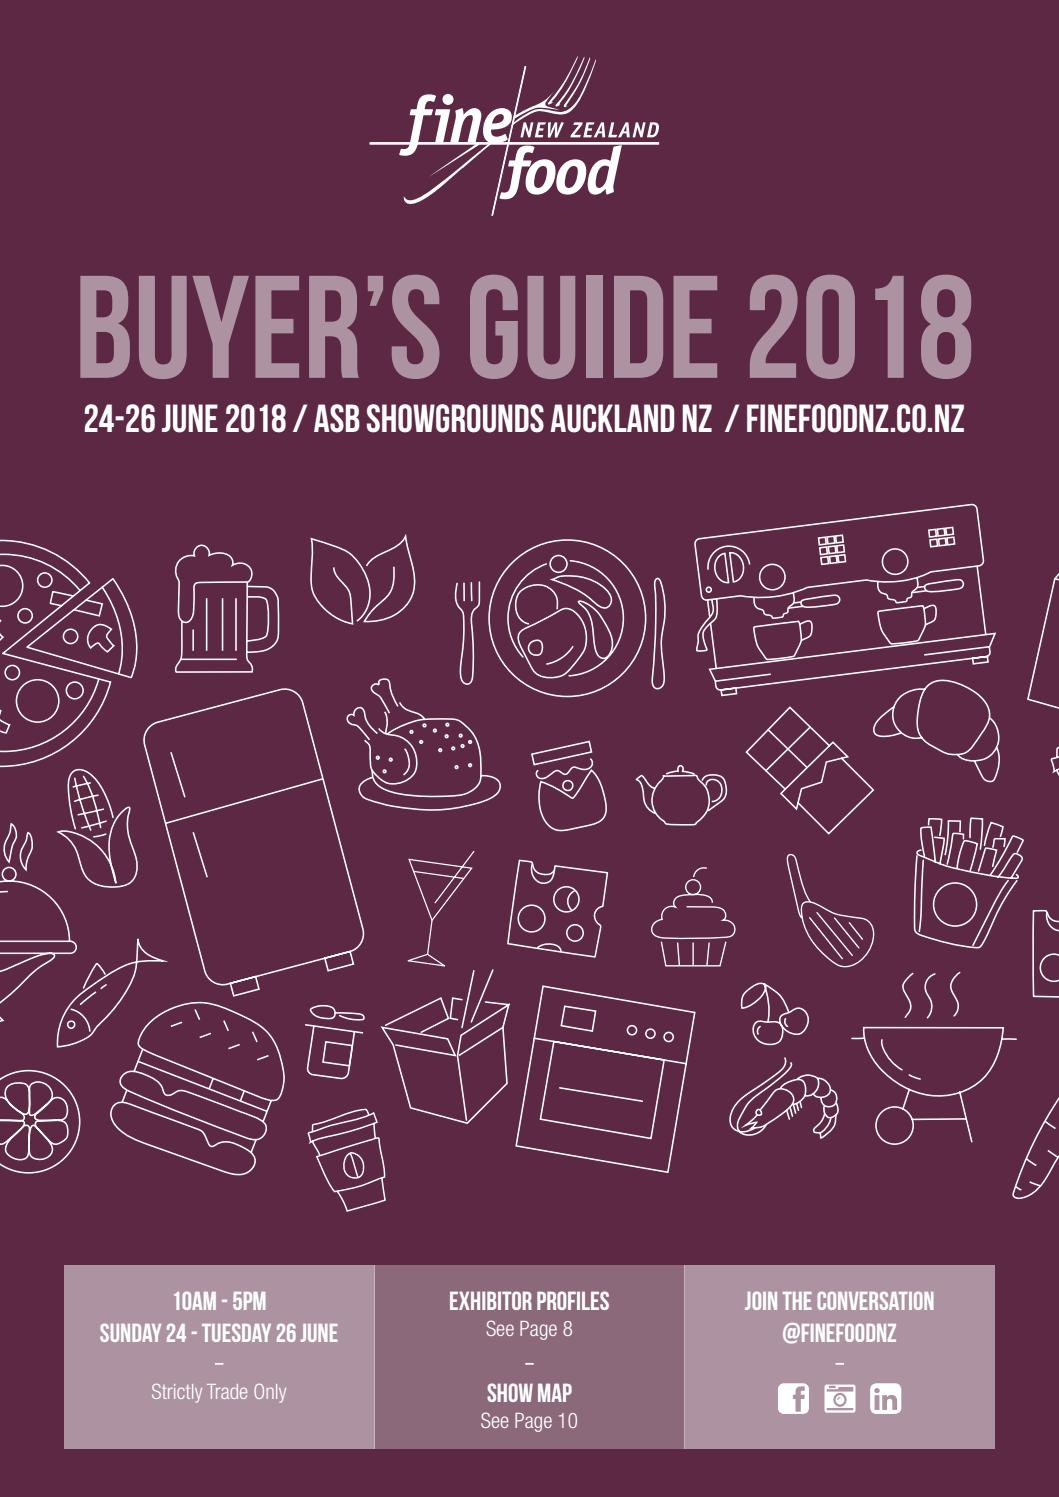 Finefoods Buyers Guide 2018 digimag by The Intermedia Group - issuu